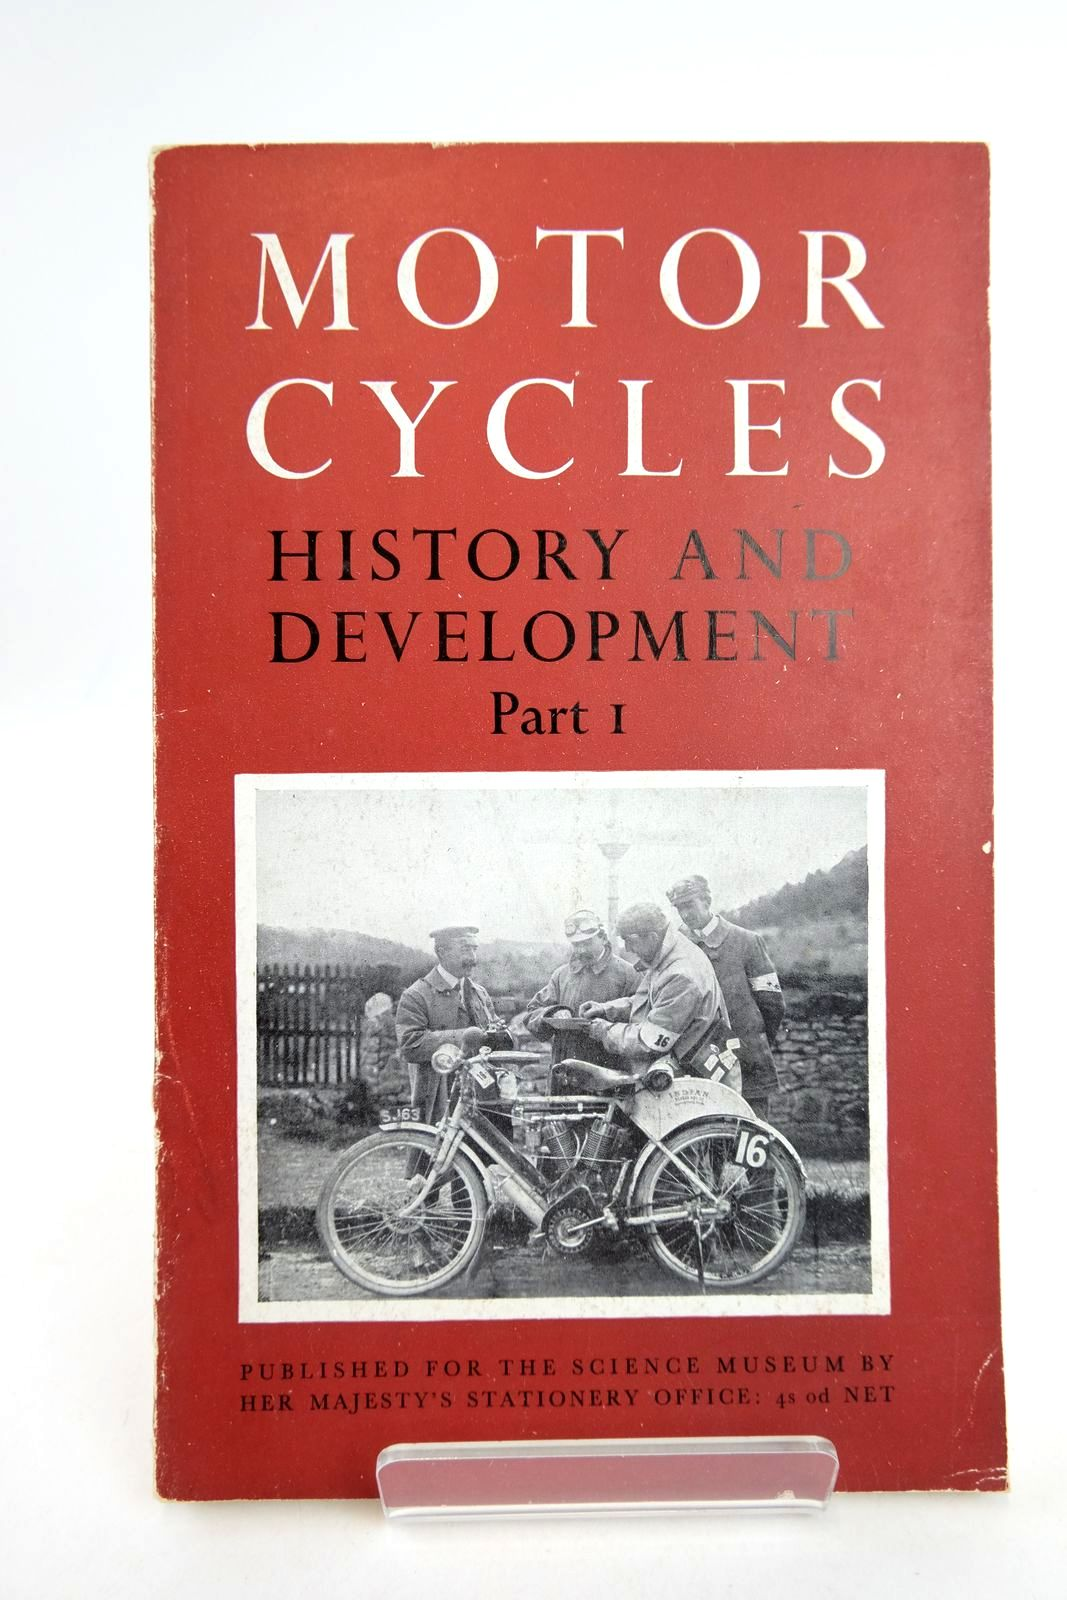 Photo of THE HISTORY AND DEVELOPMENT OF MOTORCYCLES PART I HISTORICAL SURVEY written by Caunter, C.F. published by HMSO (STOCK CODE: 2133182)  for sale by Stella & Rose's Books